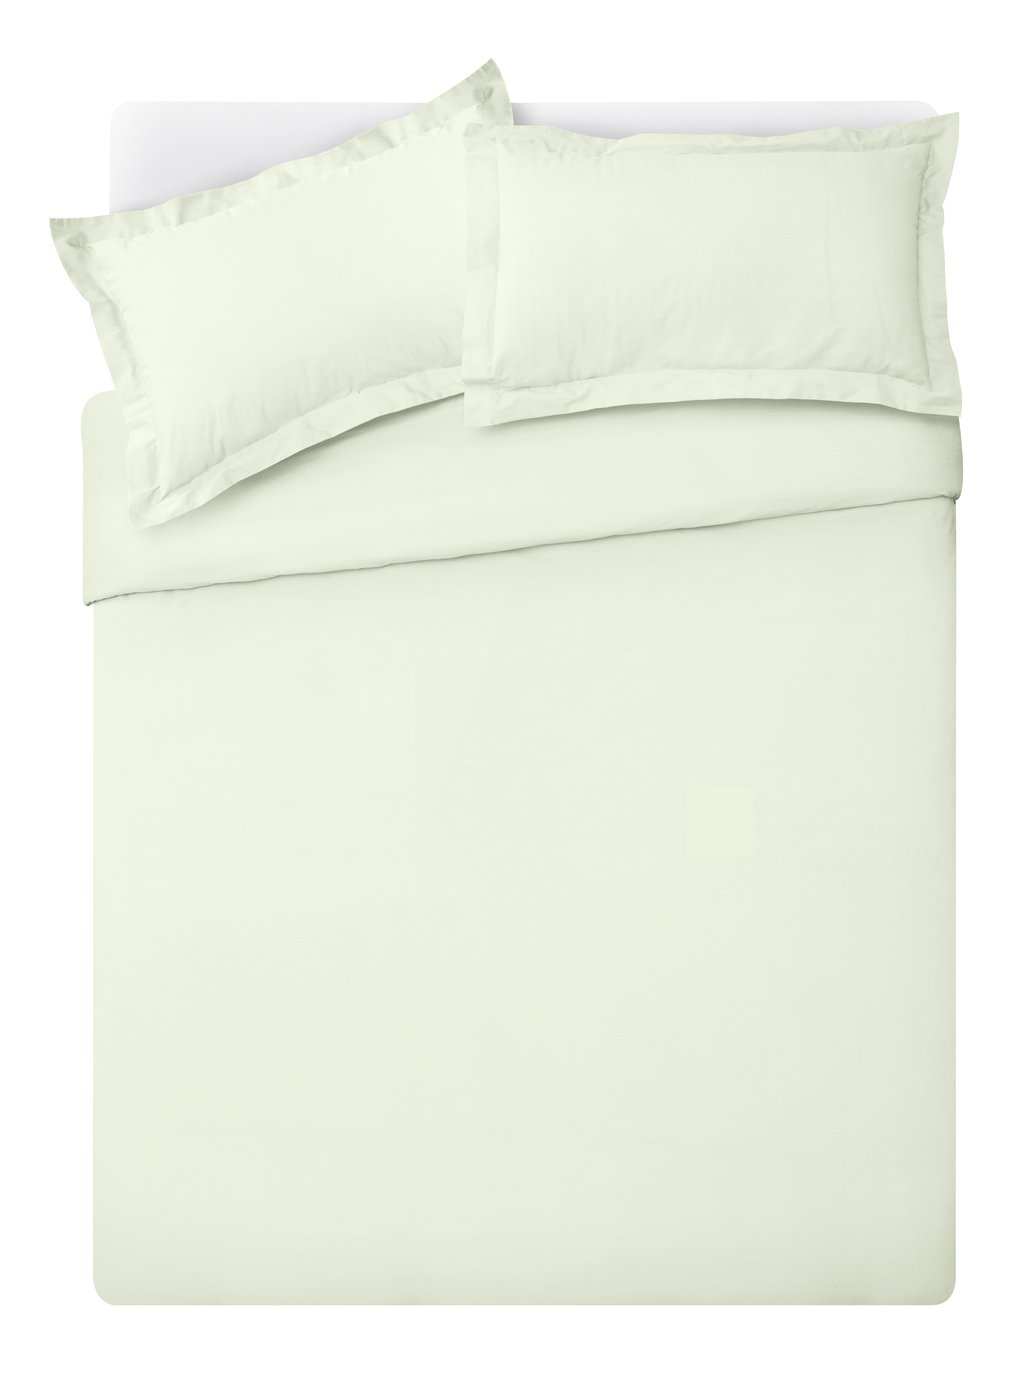 Argos Home 400 TC Oxford Bedding Set